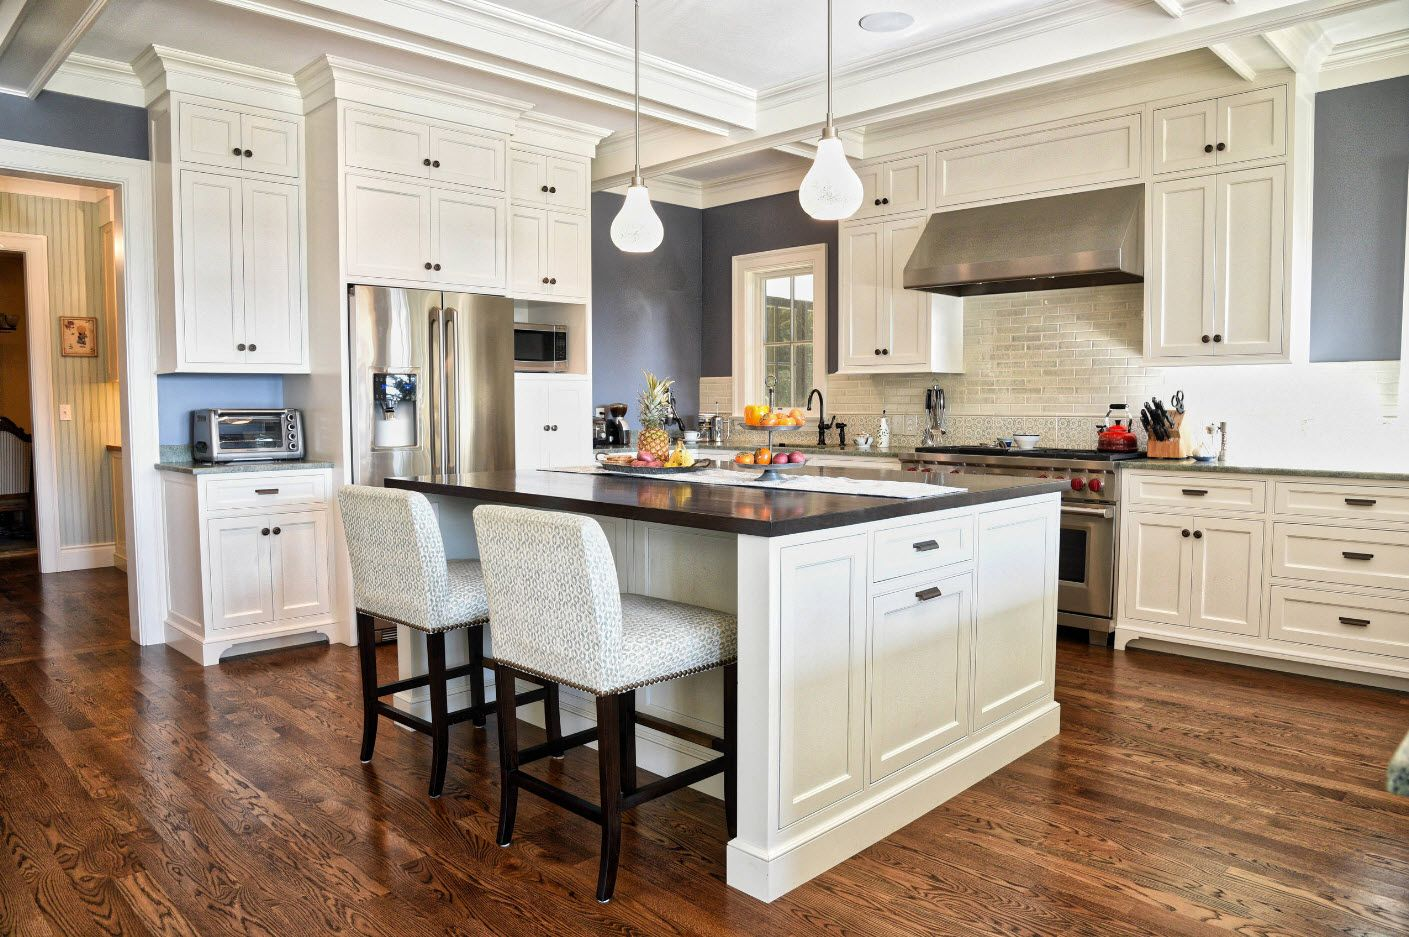 Classic Victorian style interior with kitchen island